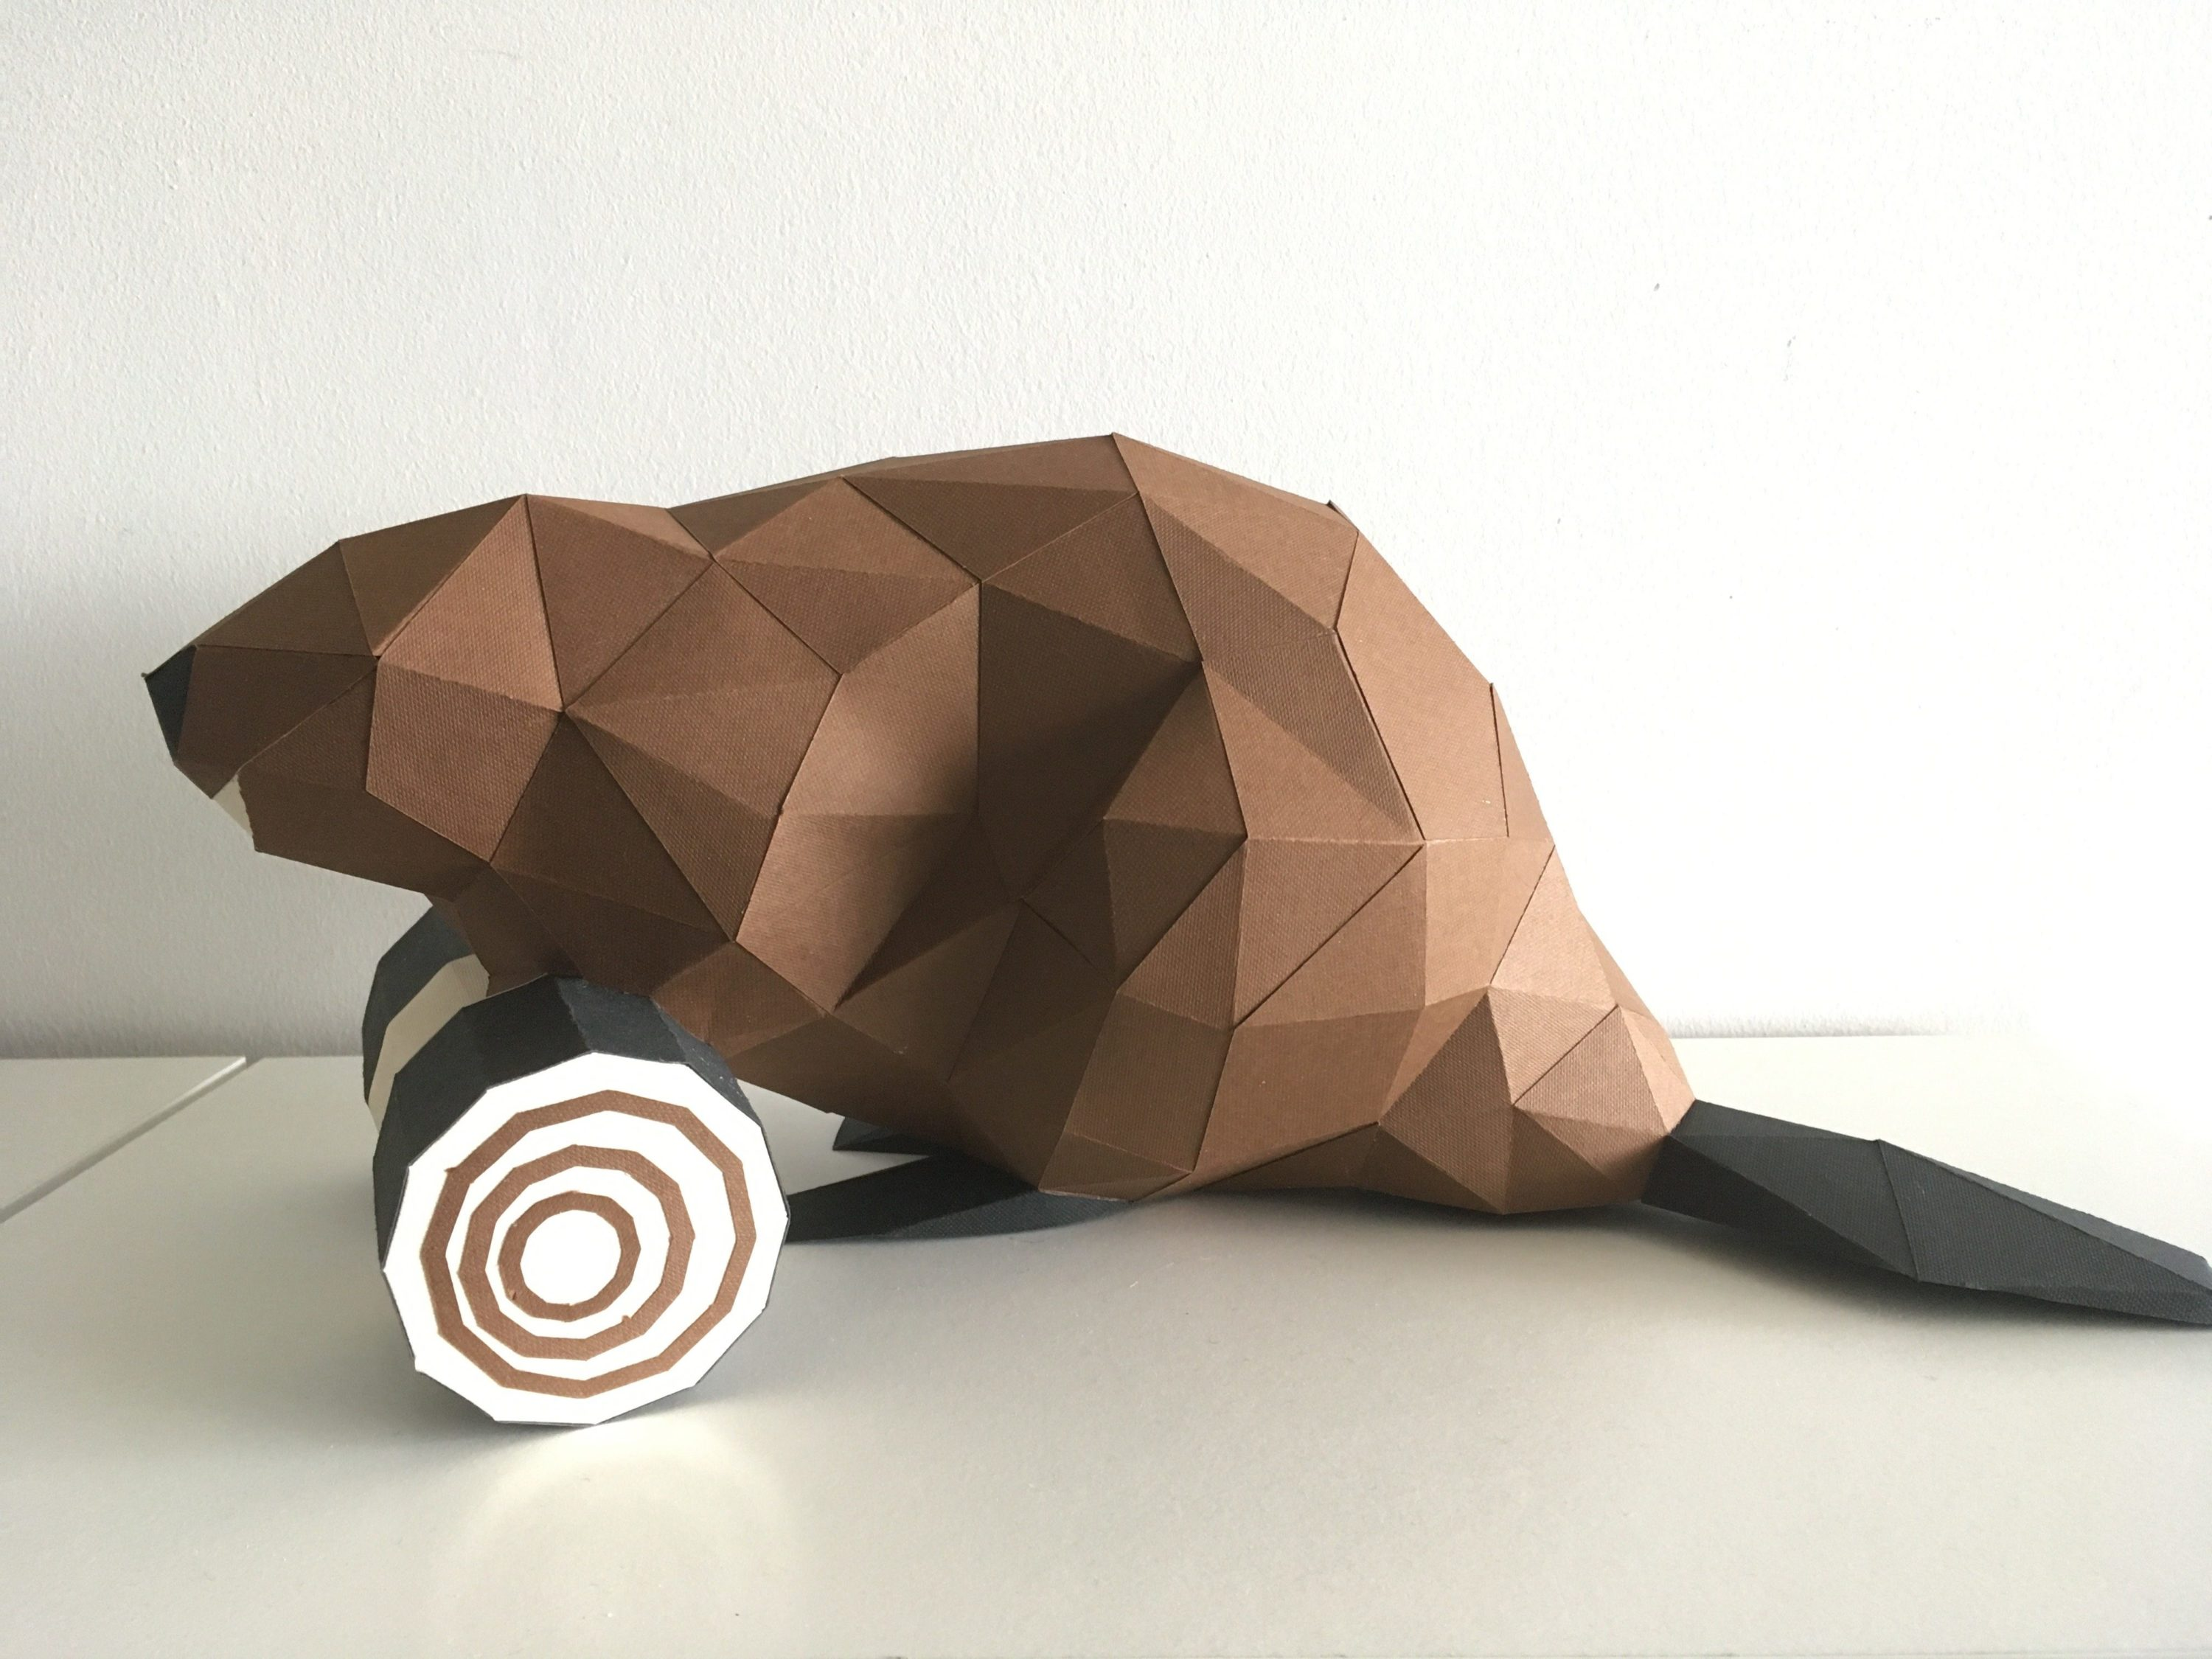 Beaver fever: Low Poly Crafts hosts a 3D paper beaver workshop on June 11. Preregistration a must